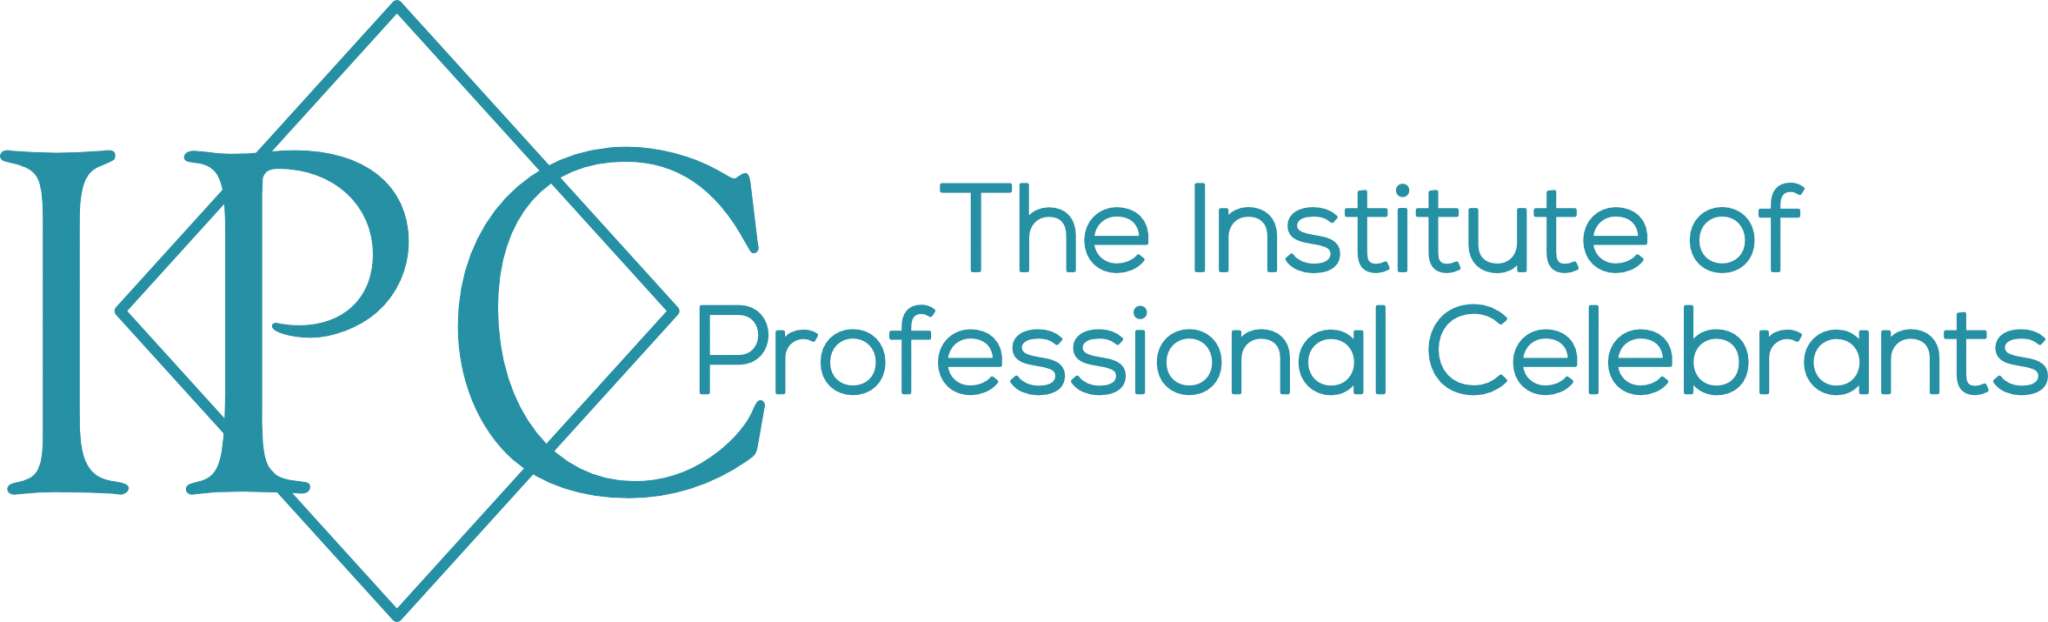 Institute of Professional Celebrants Tra